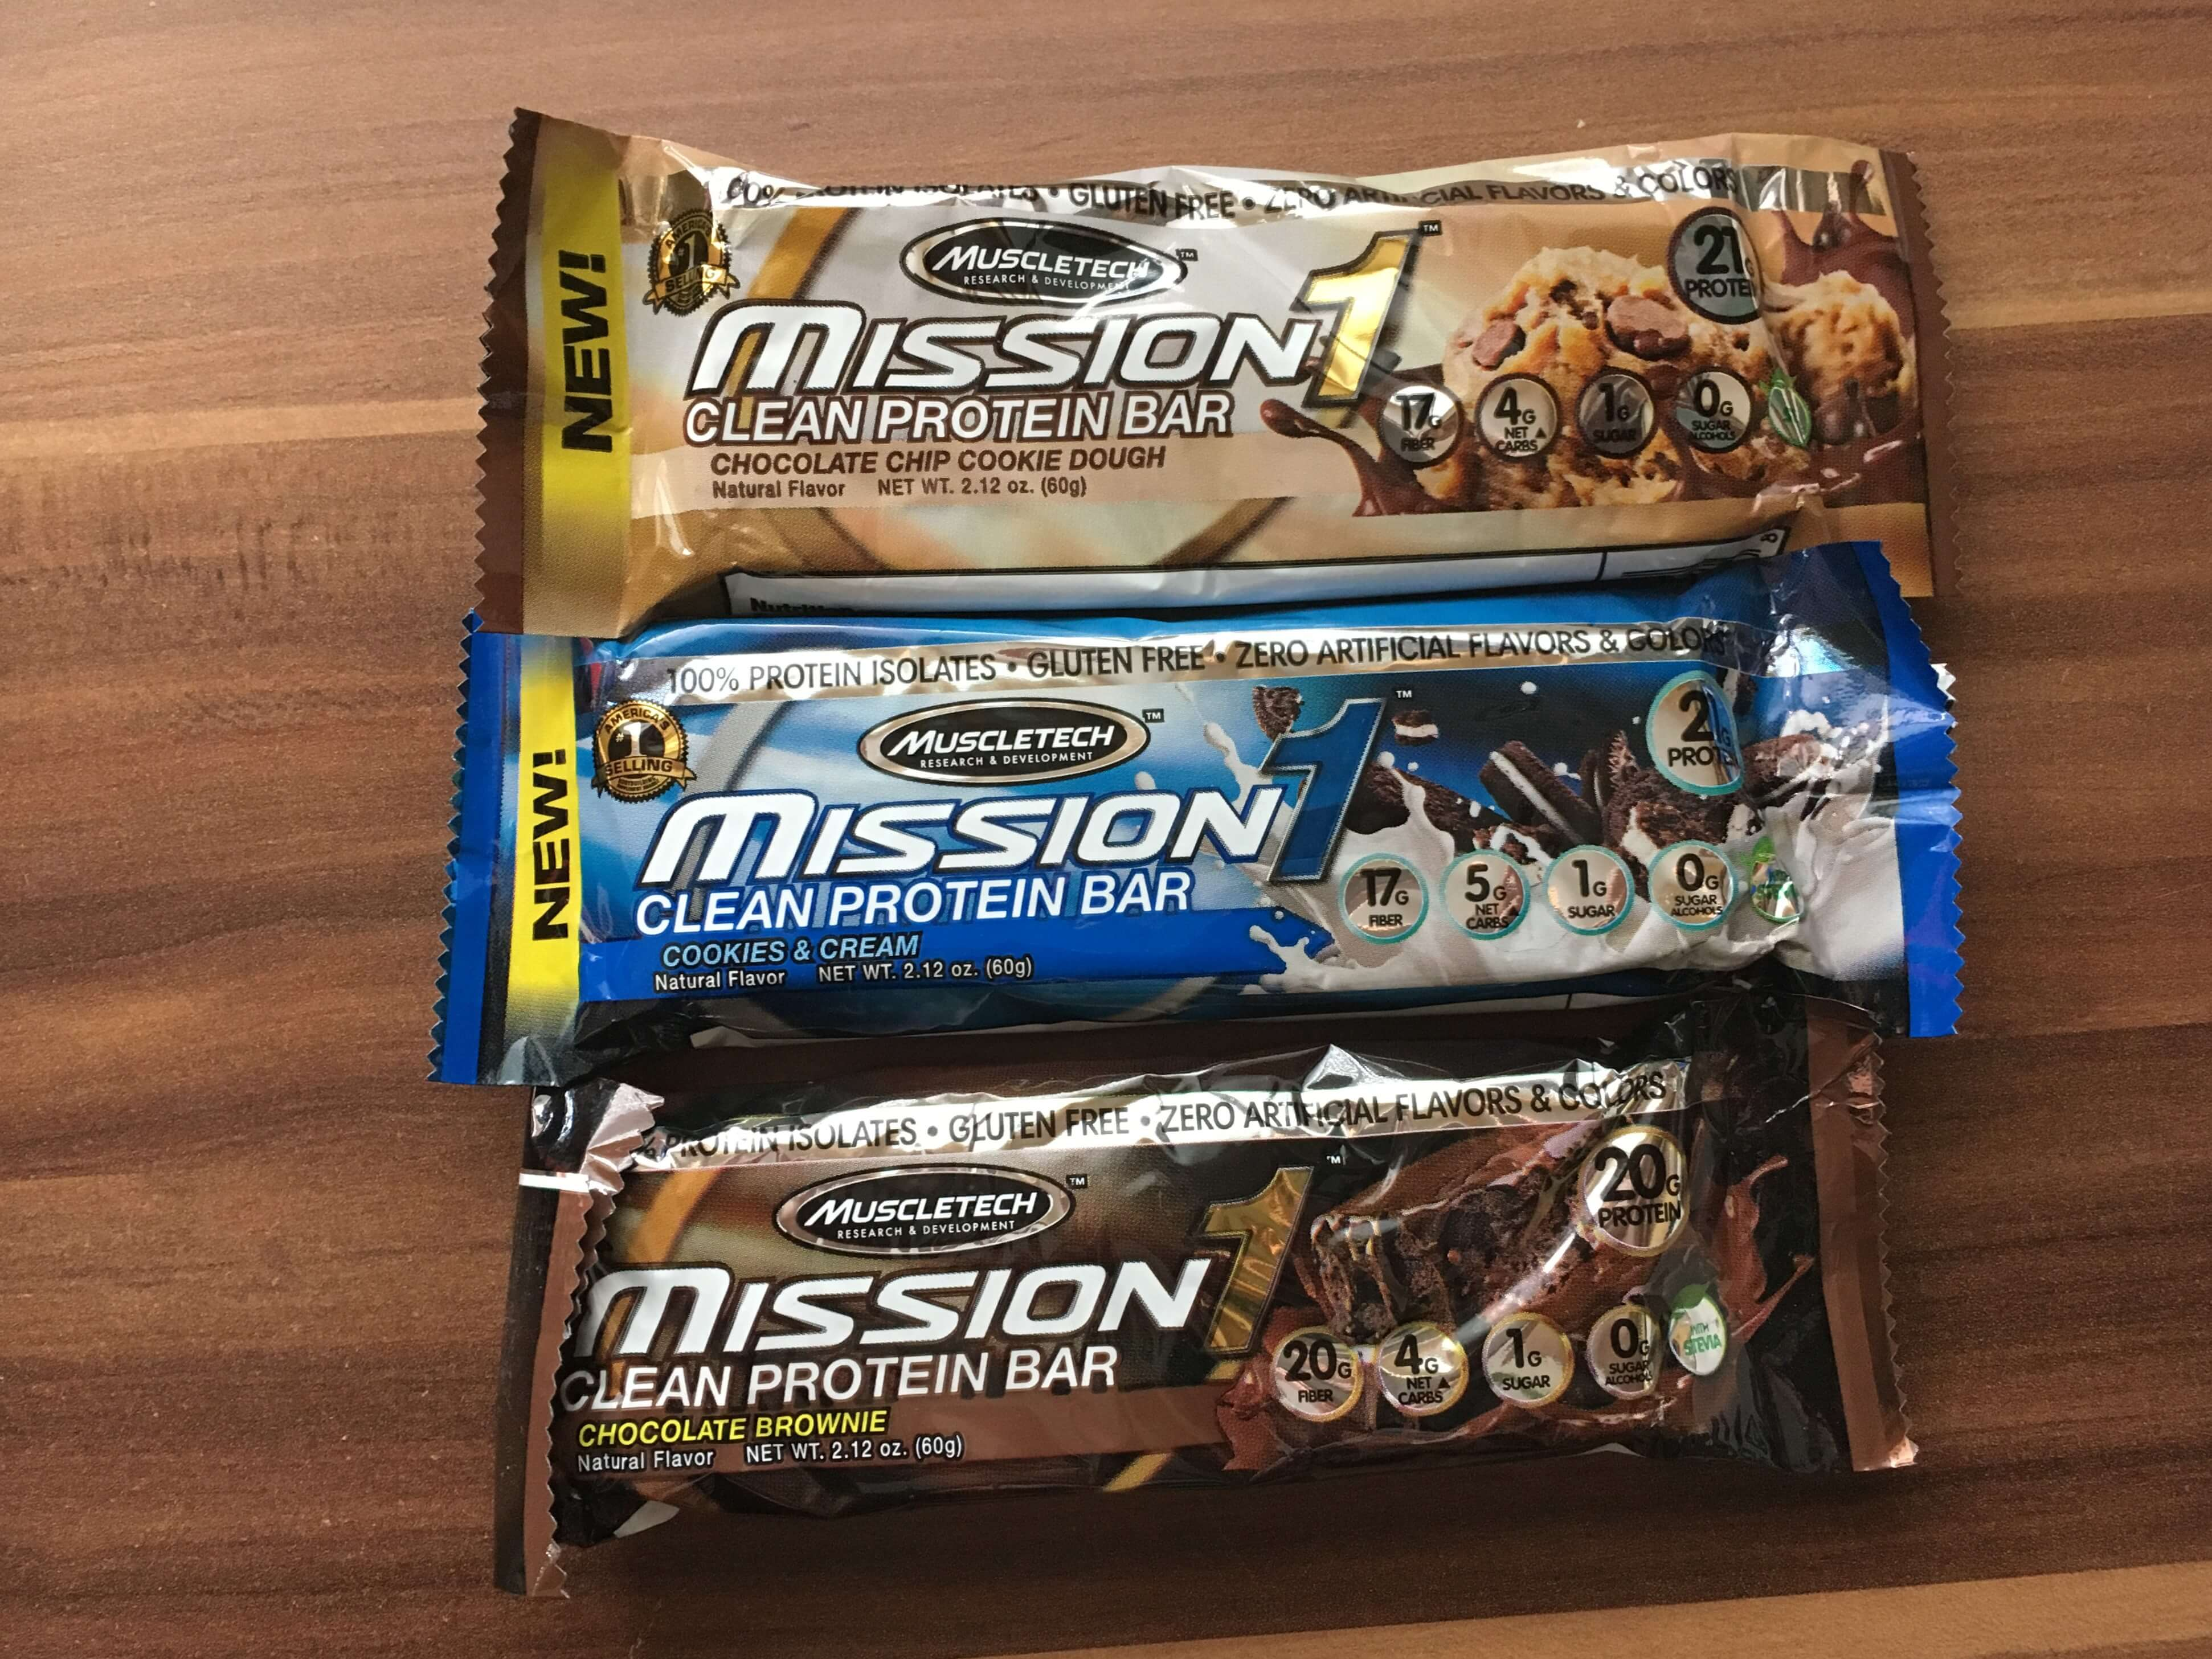 Muscletech Mission1 Clean Protein Bar (2)